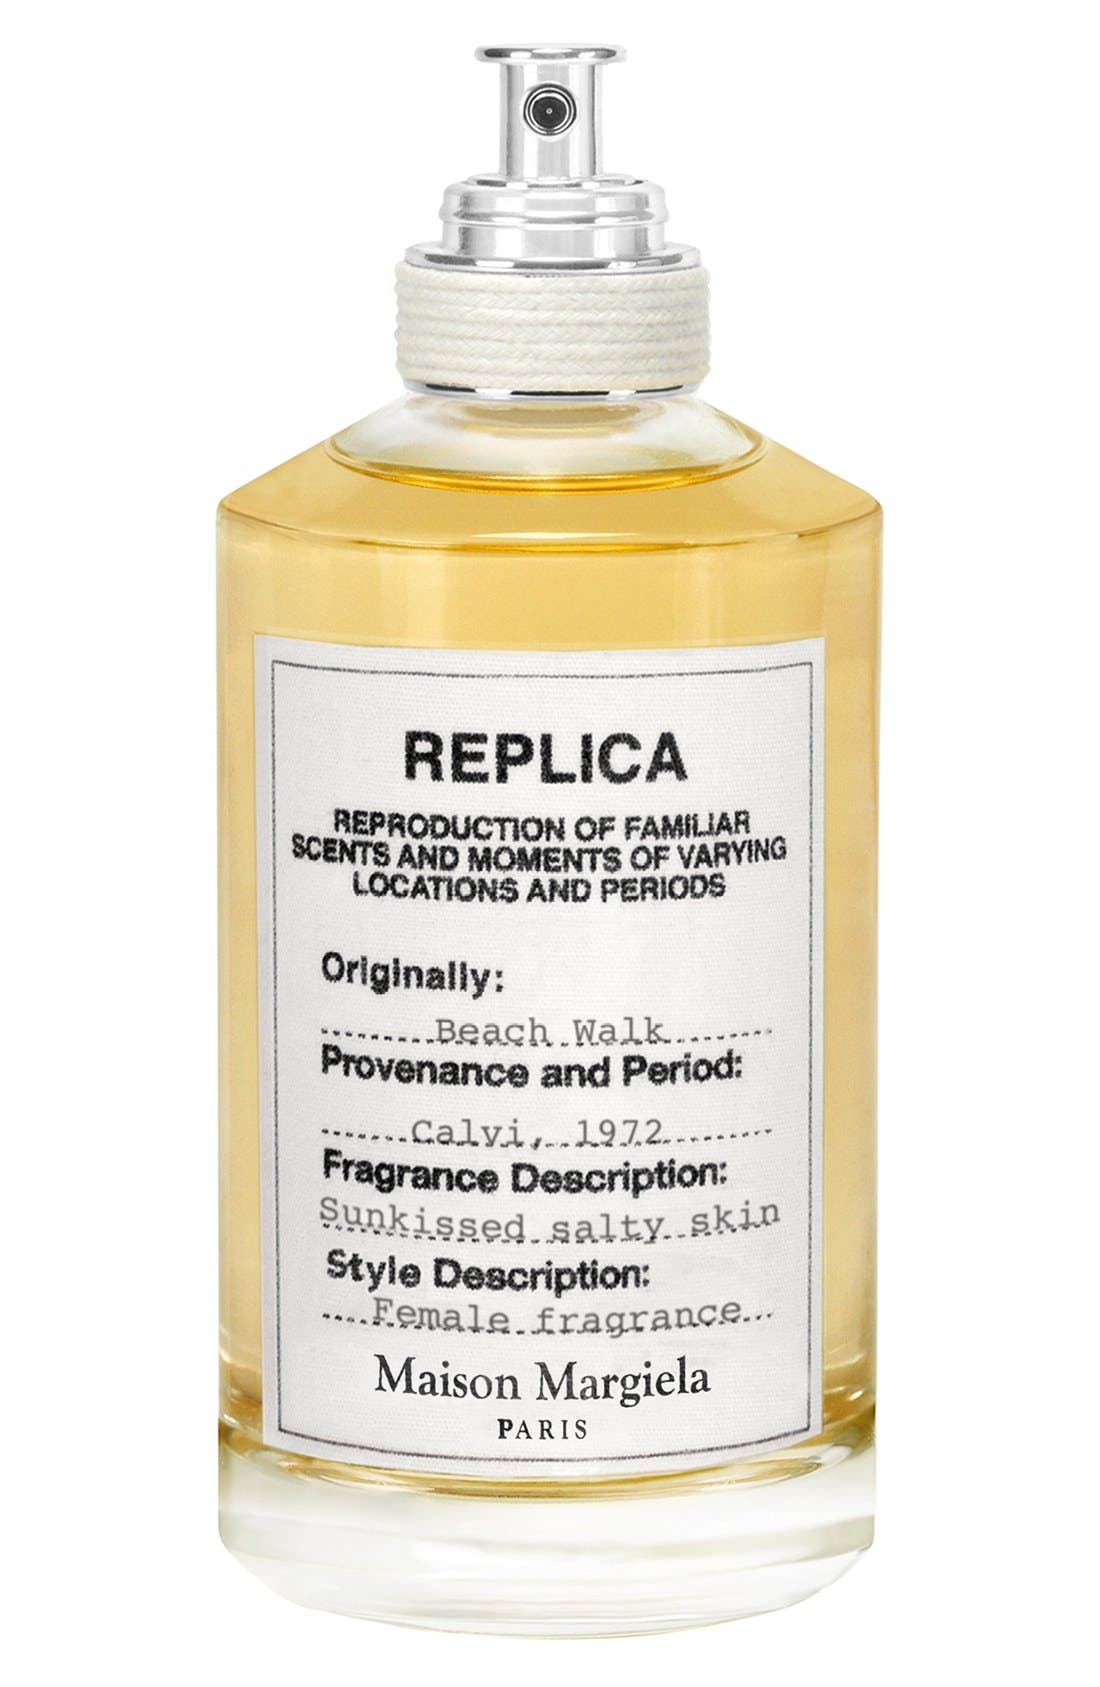 Maison Margiela Replica Beach Walk Fragrance